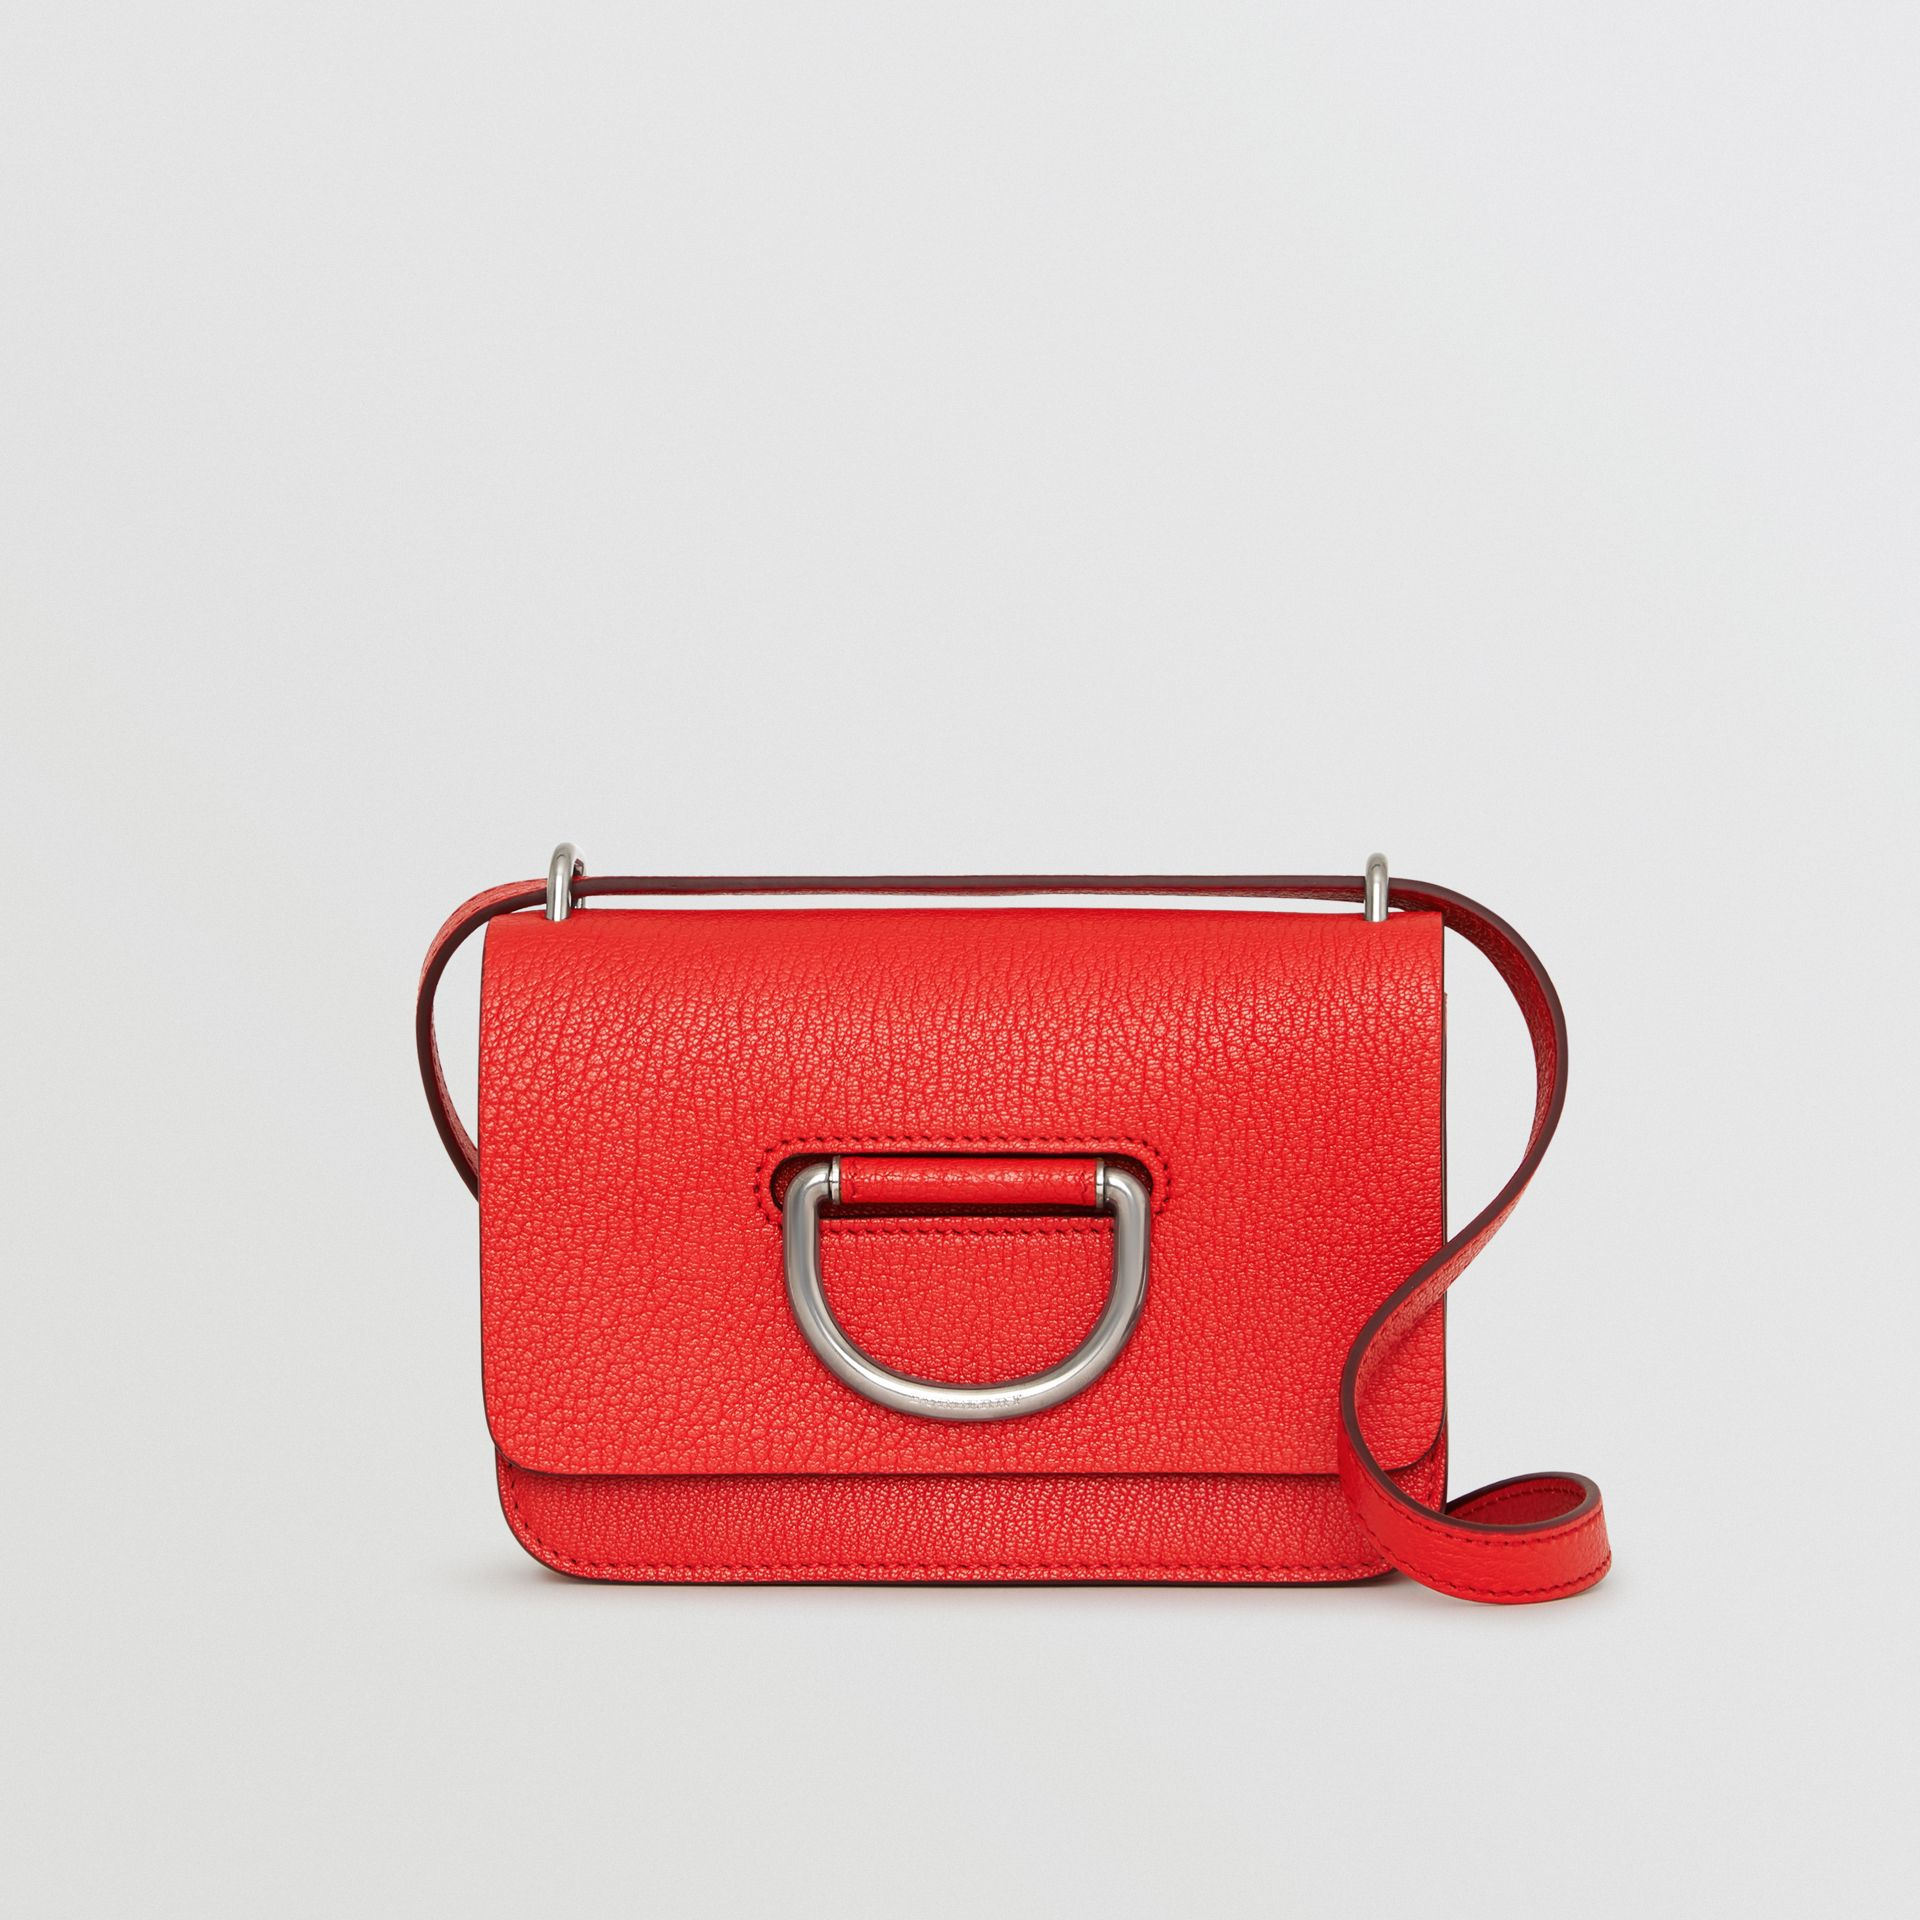 Mini sac The D-ring en cuir (Rouge Vif) - Femme | Burberry Canada - photo de la galerie 0